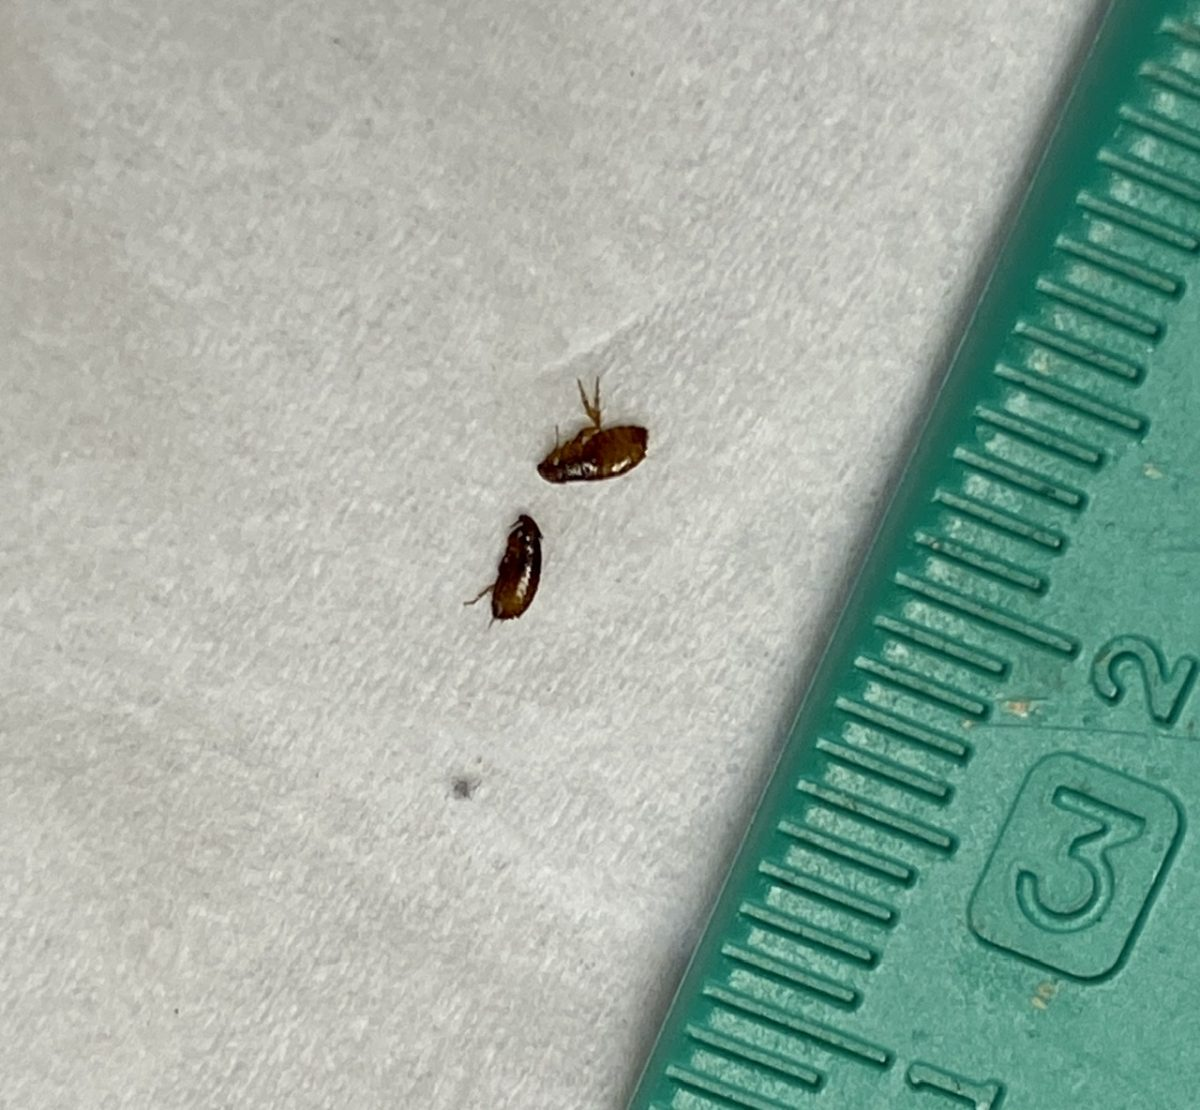 Fleas removed during bath